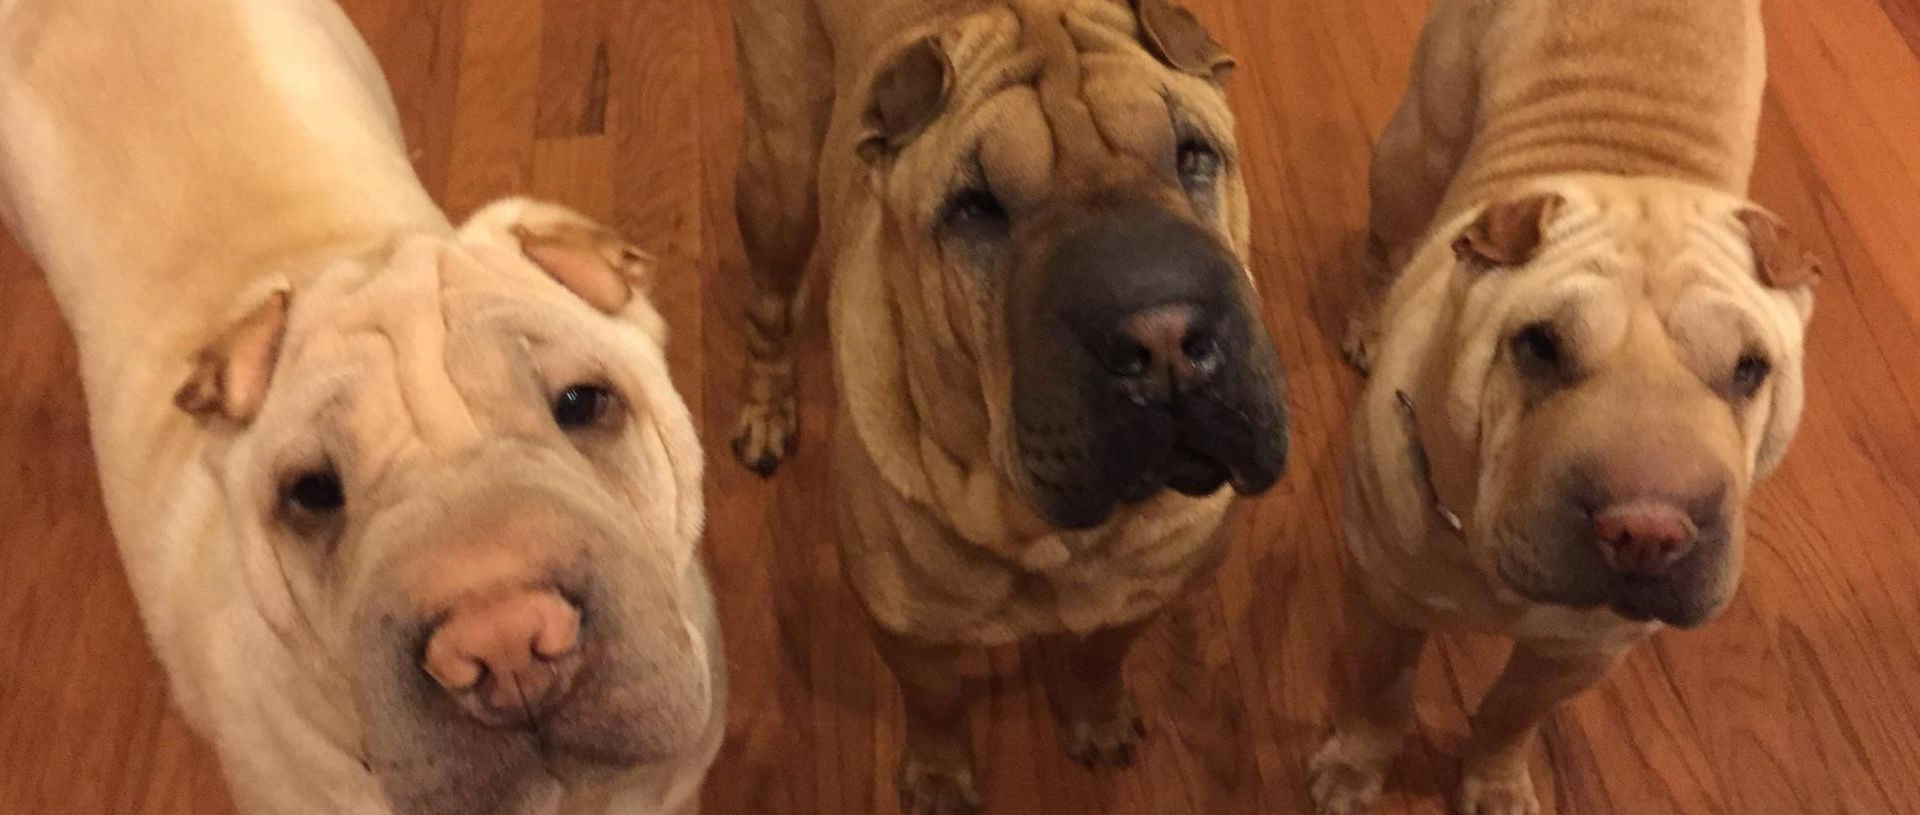 Home Shar Pei Rescue Of Virginia Adopt Foster Donate Volunteer To Help A Shar Pei